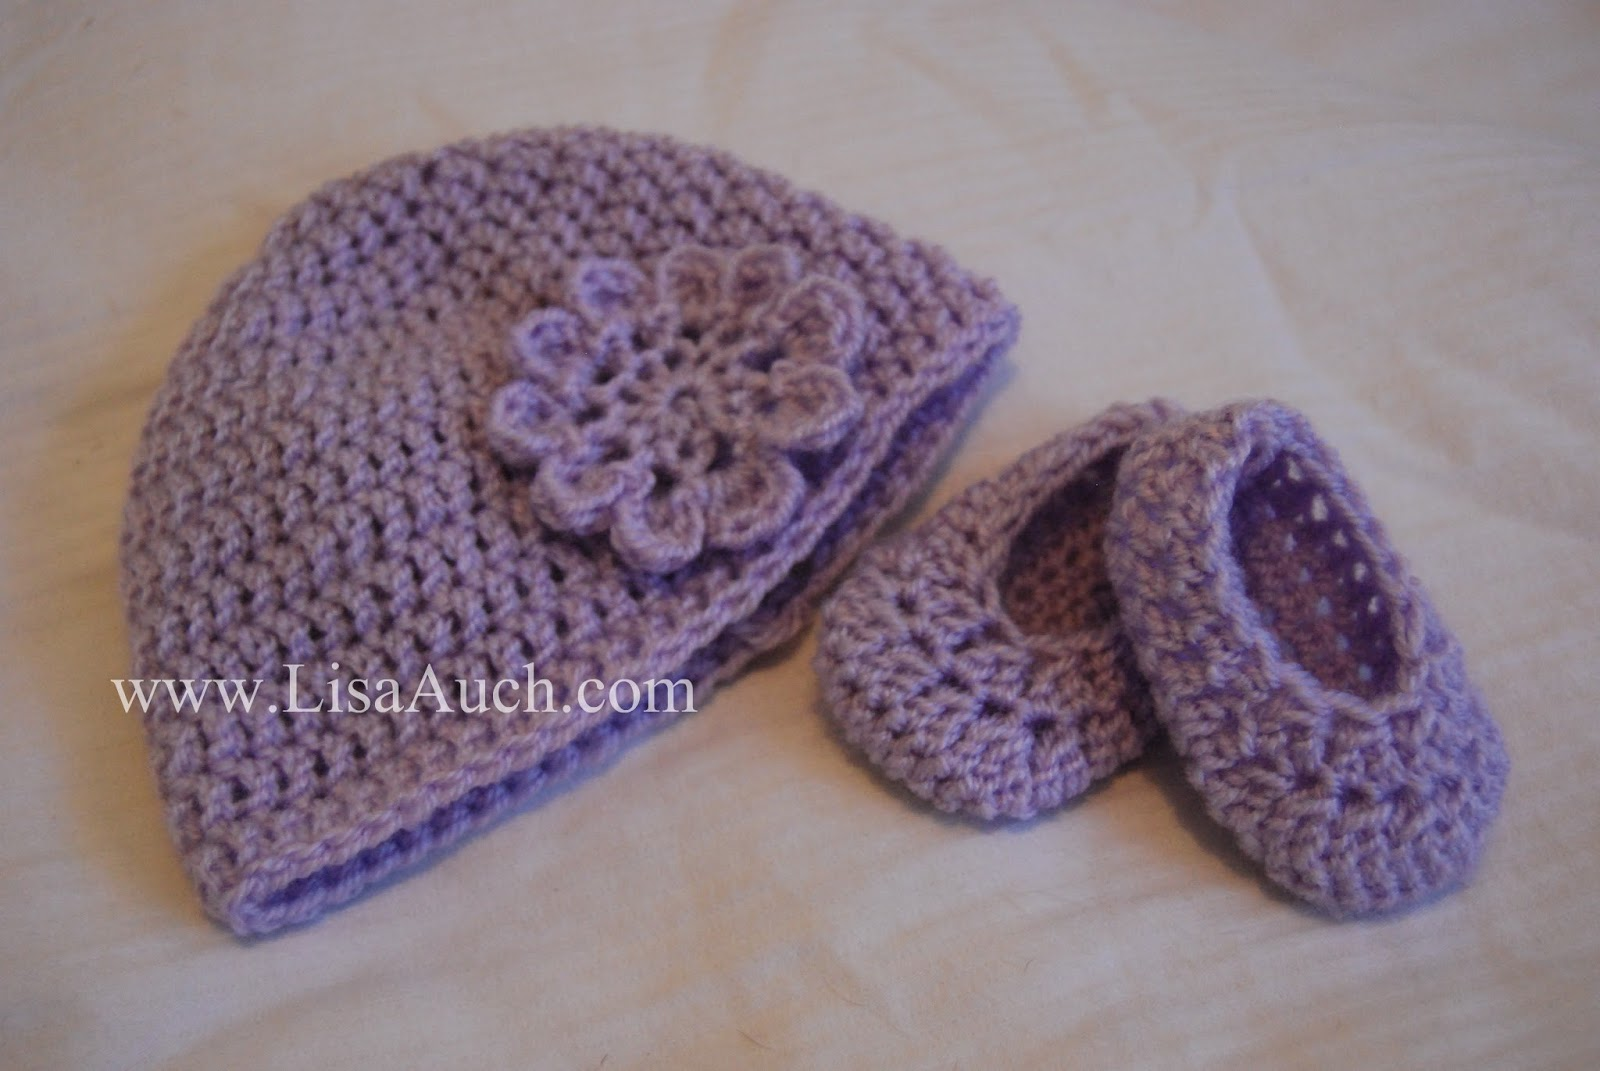 Crochet Patterns Baby Hats : ... crochet pattern-baby crochet hat pattern-crochet baby booties pattern